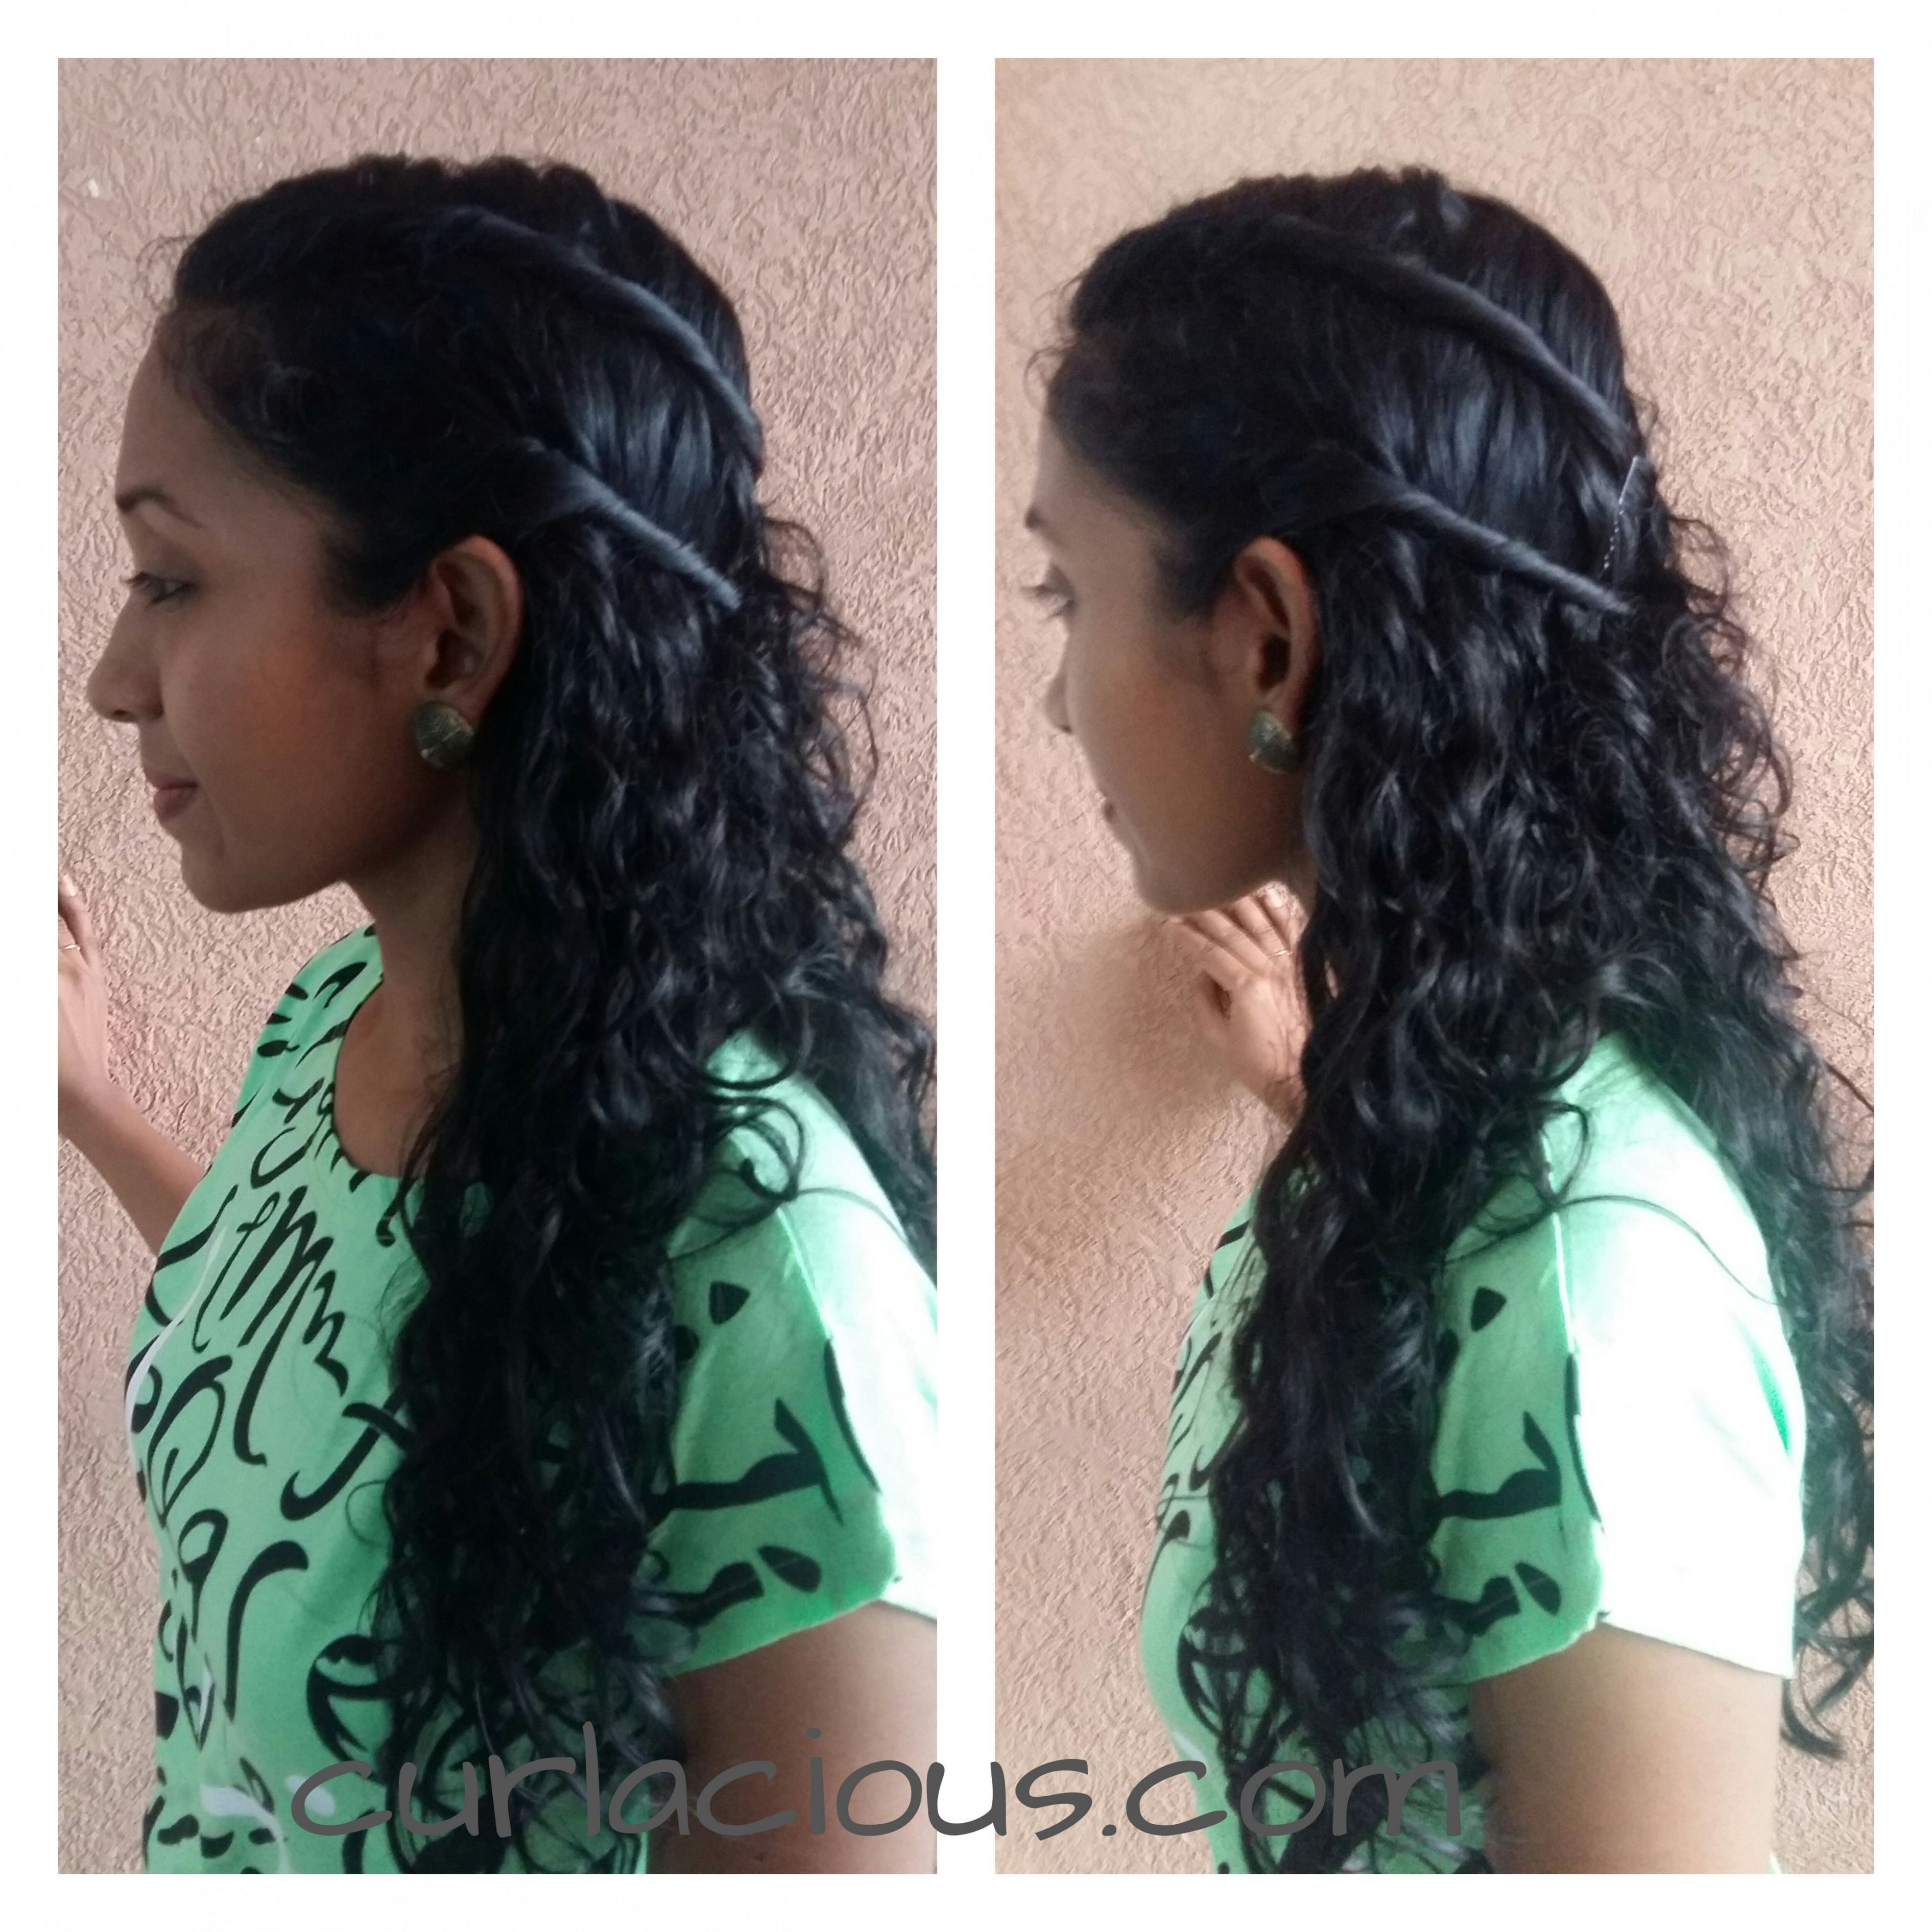 Hairstyles For Curly Hair Indian Curly Hairstyles Hairstylesforcurlyhair Indian Weaveha Curly Hair Styles Haircuts For Wavy Hair Medium Curly Hair Styles